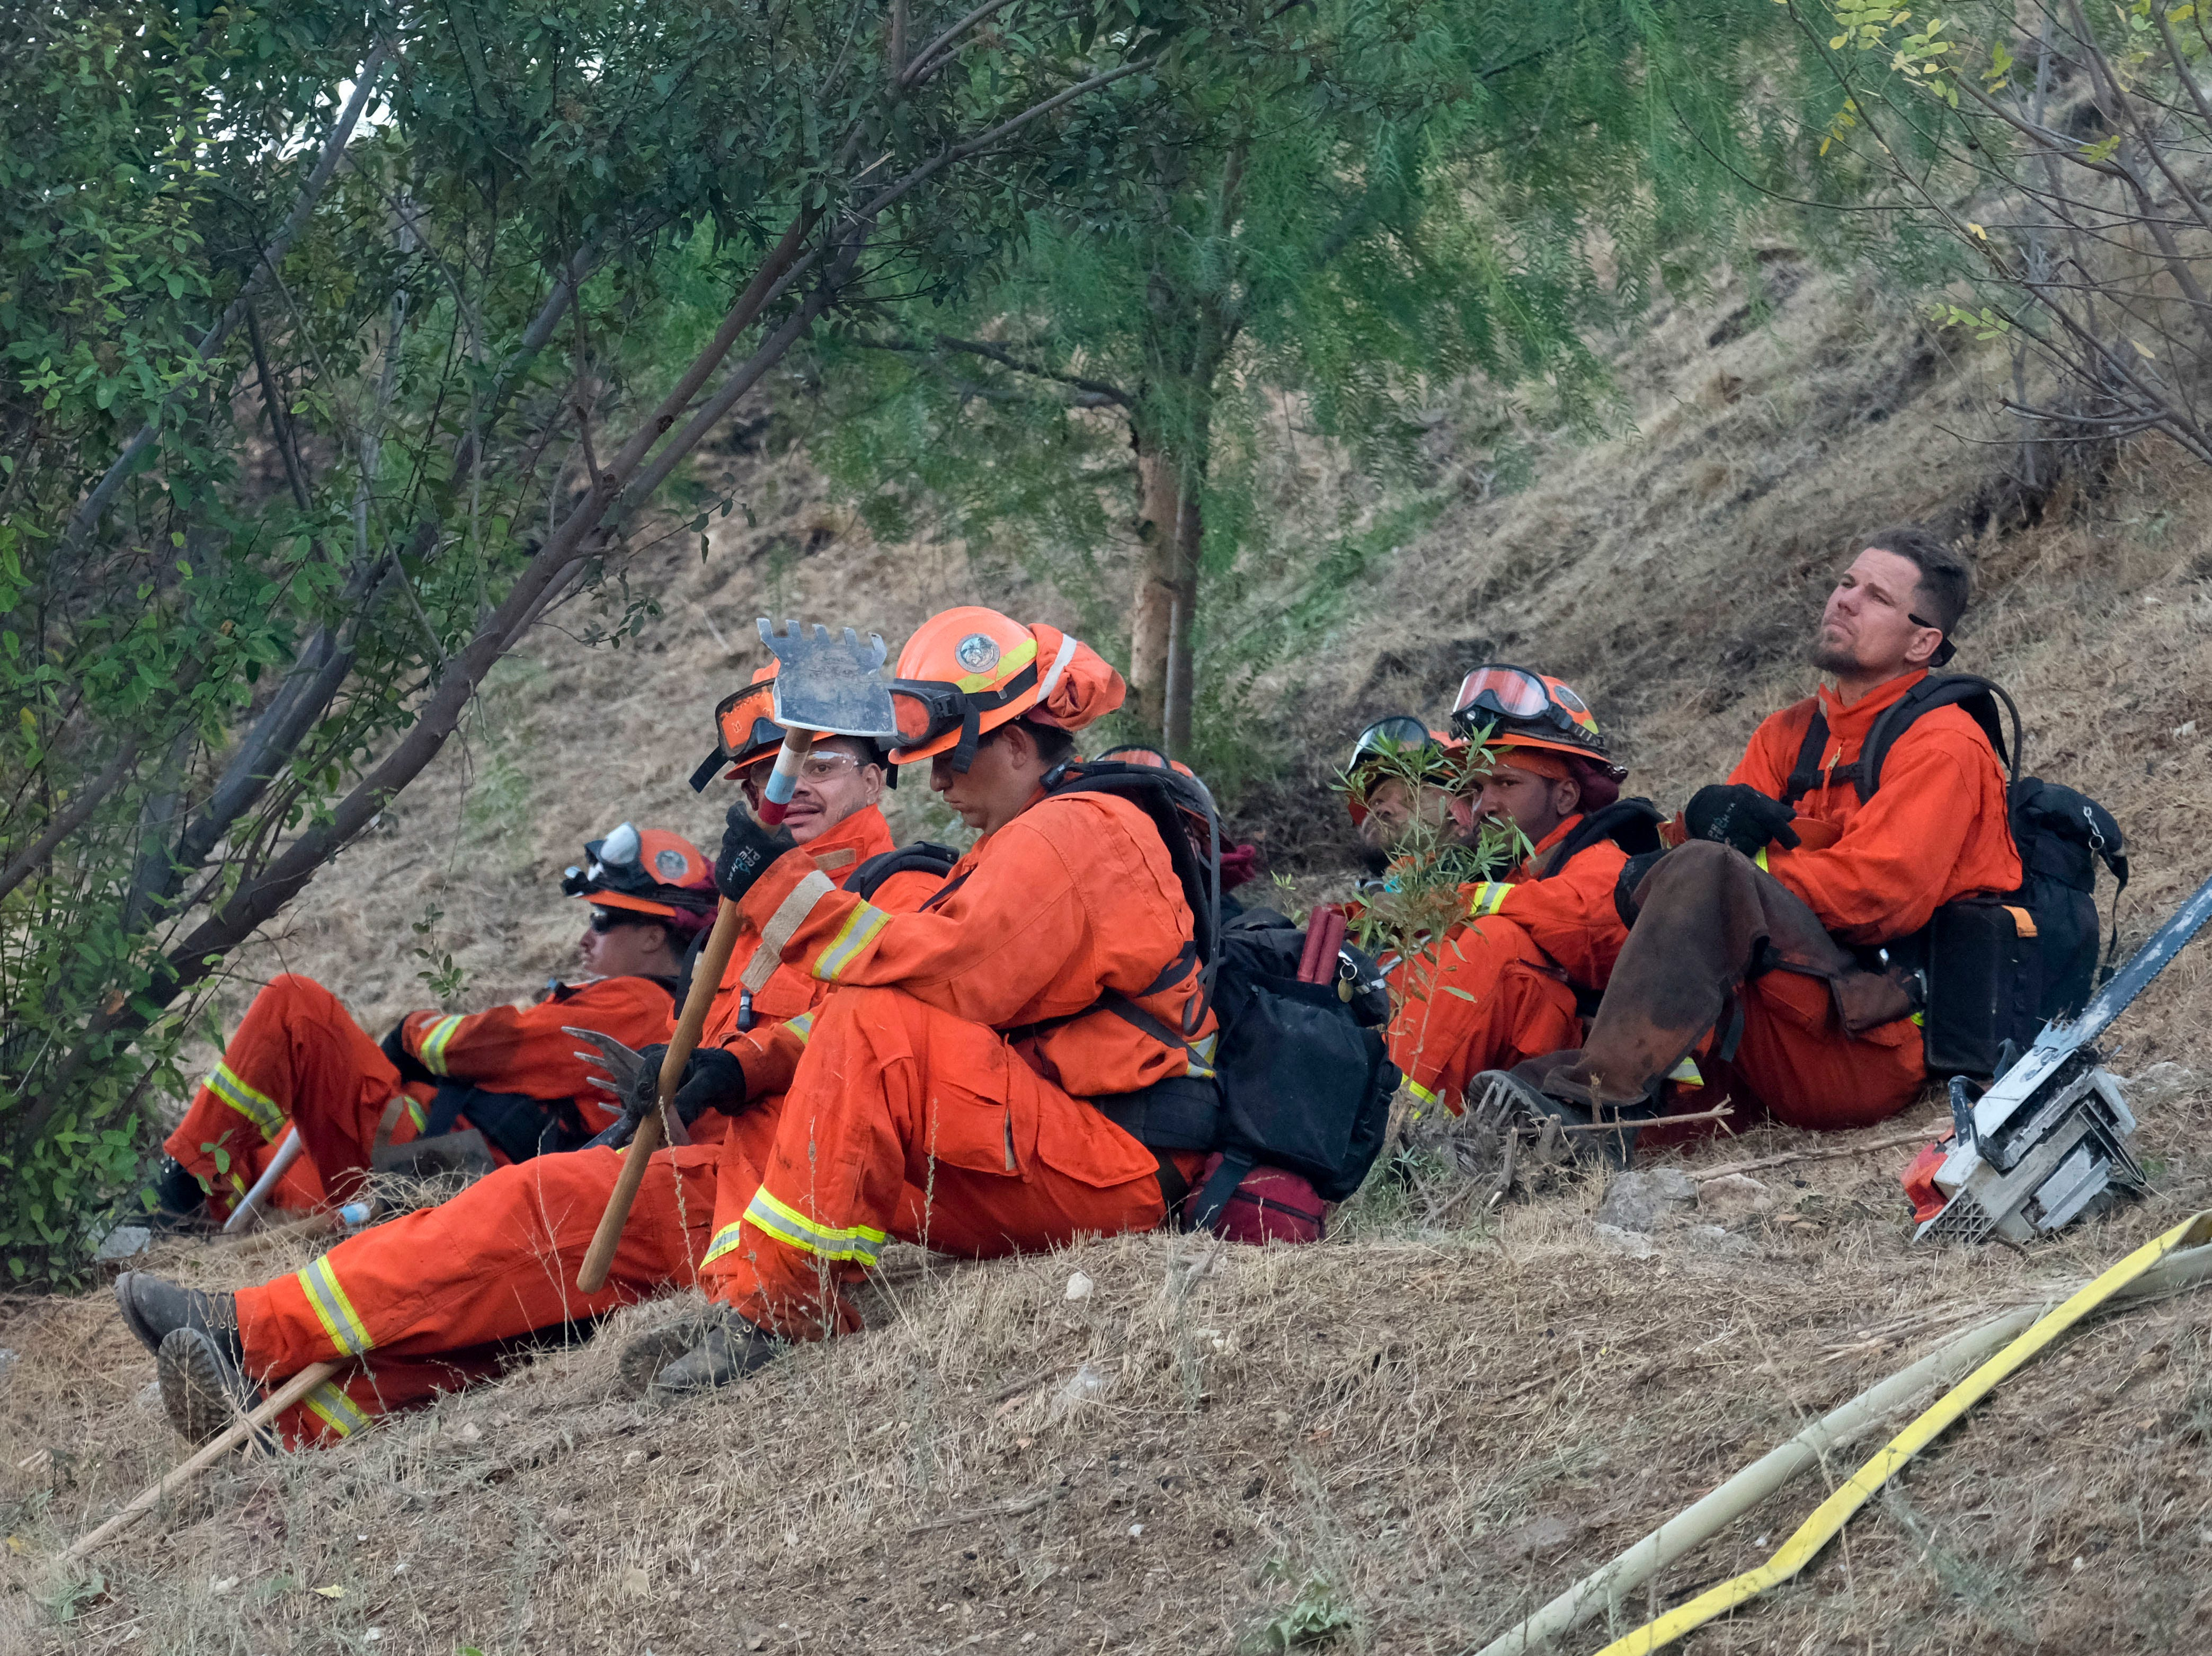 Members of a hand crew rest on a hillside in West Hills, California, Nov. 11, 2018.